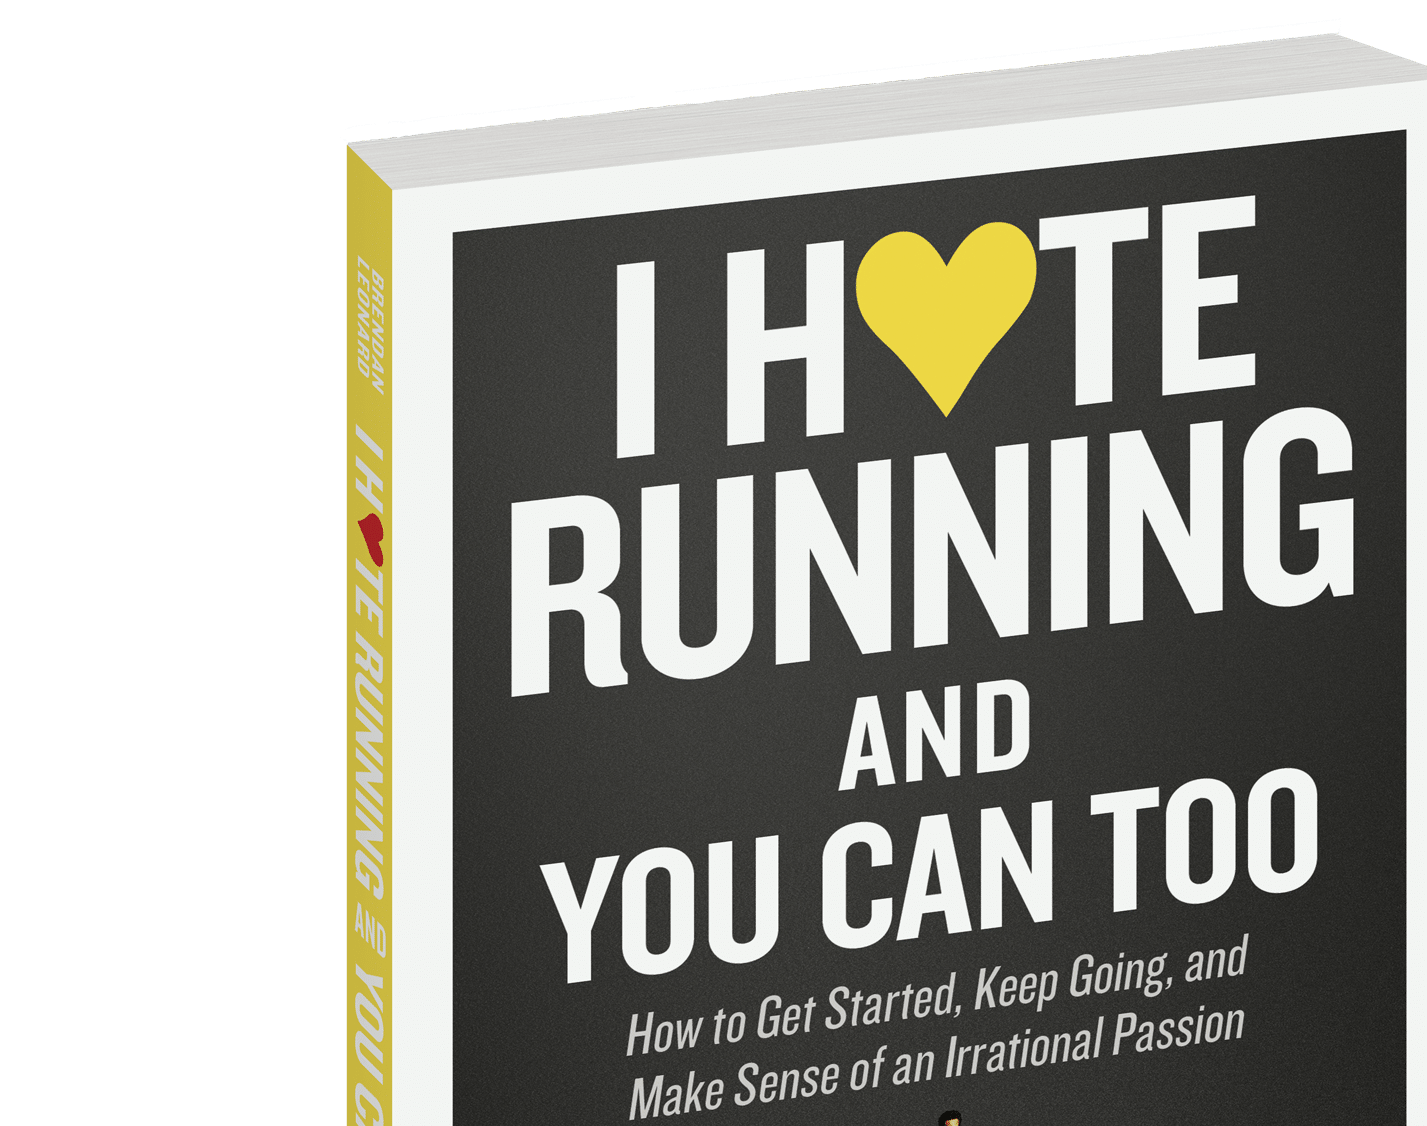 I Hate Running And You Can Too